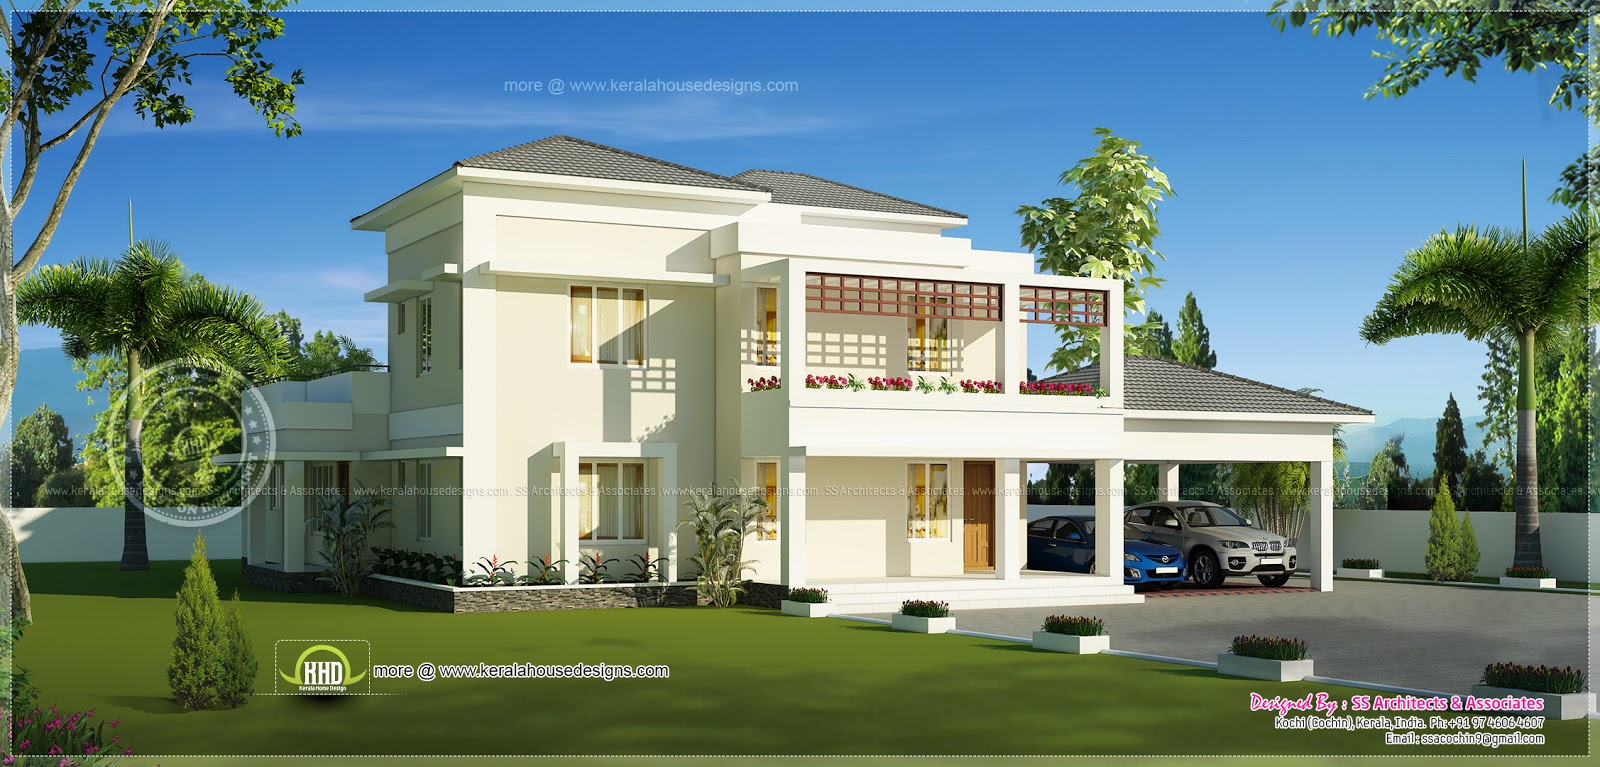 Beautiful double storey modern villa exterior kerala for Two storey house plans in kerala